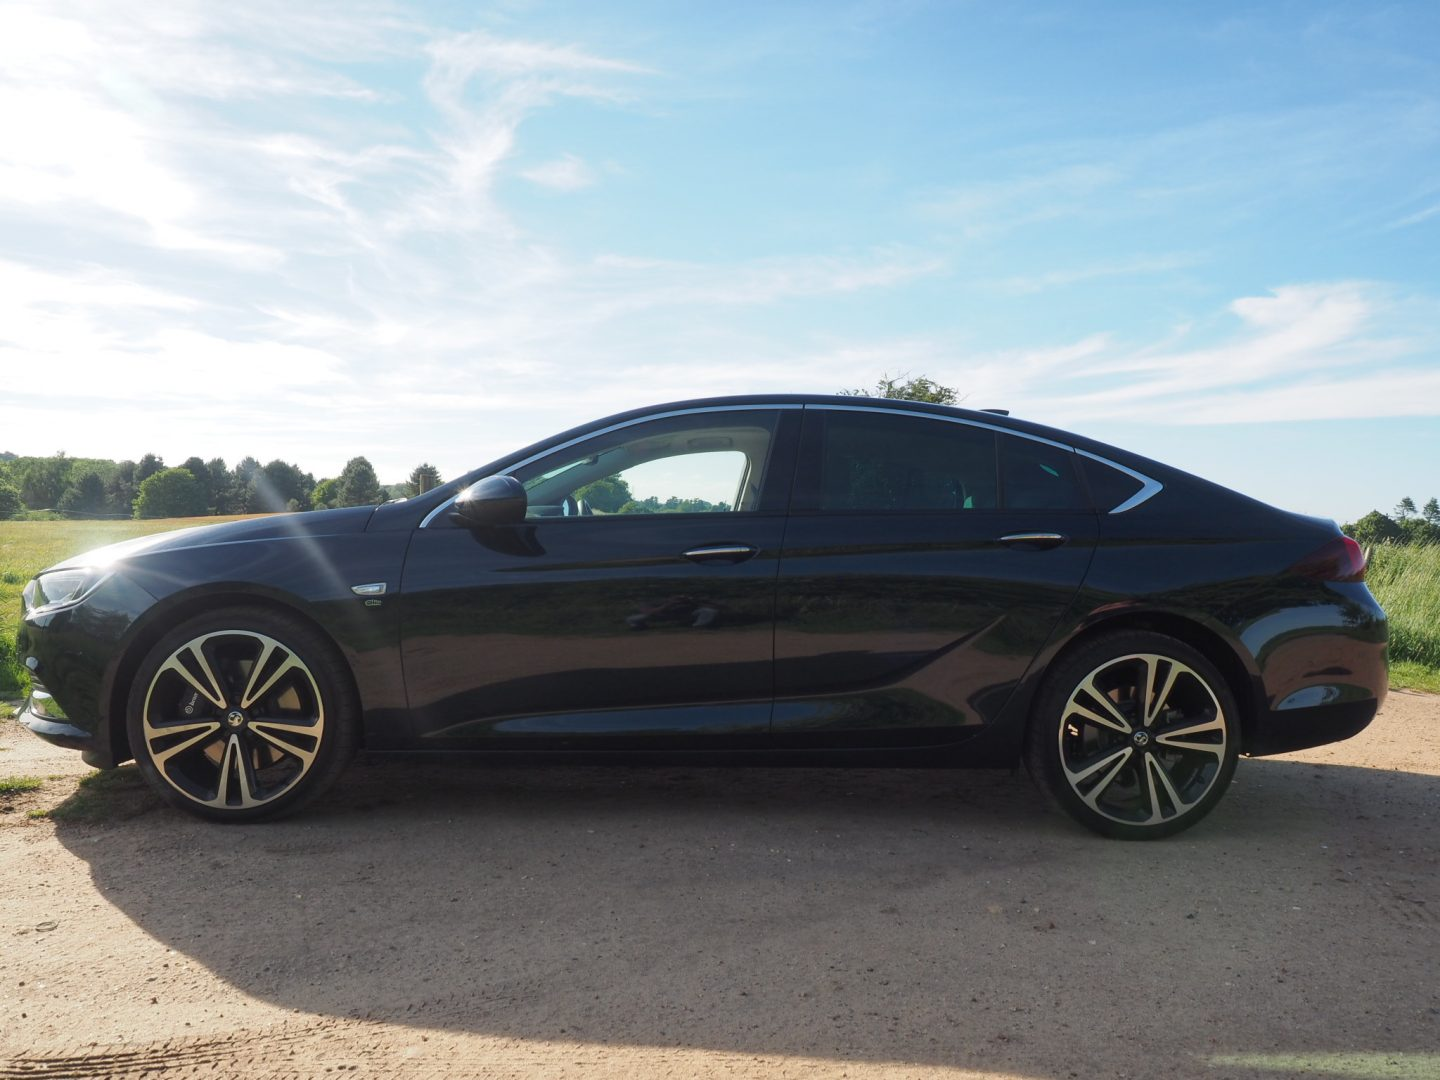 Behind The Wheel Of Vauxhall Insignia Grand Sport Maketh Sports Car In My Own View This Feels Like Tough Guy Horse Power You Would Expect From A Jaguar Xf Combined With Delicate Luxuries An Class But Without